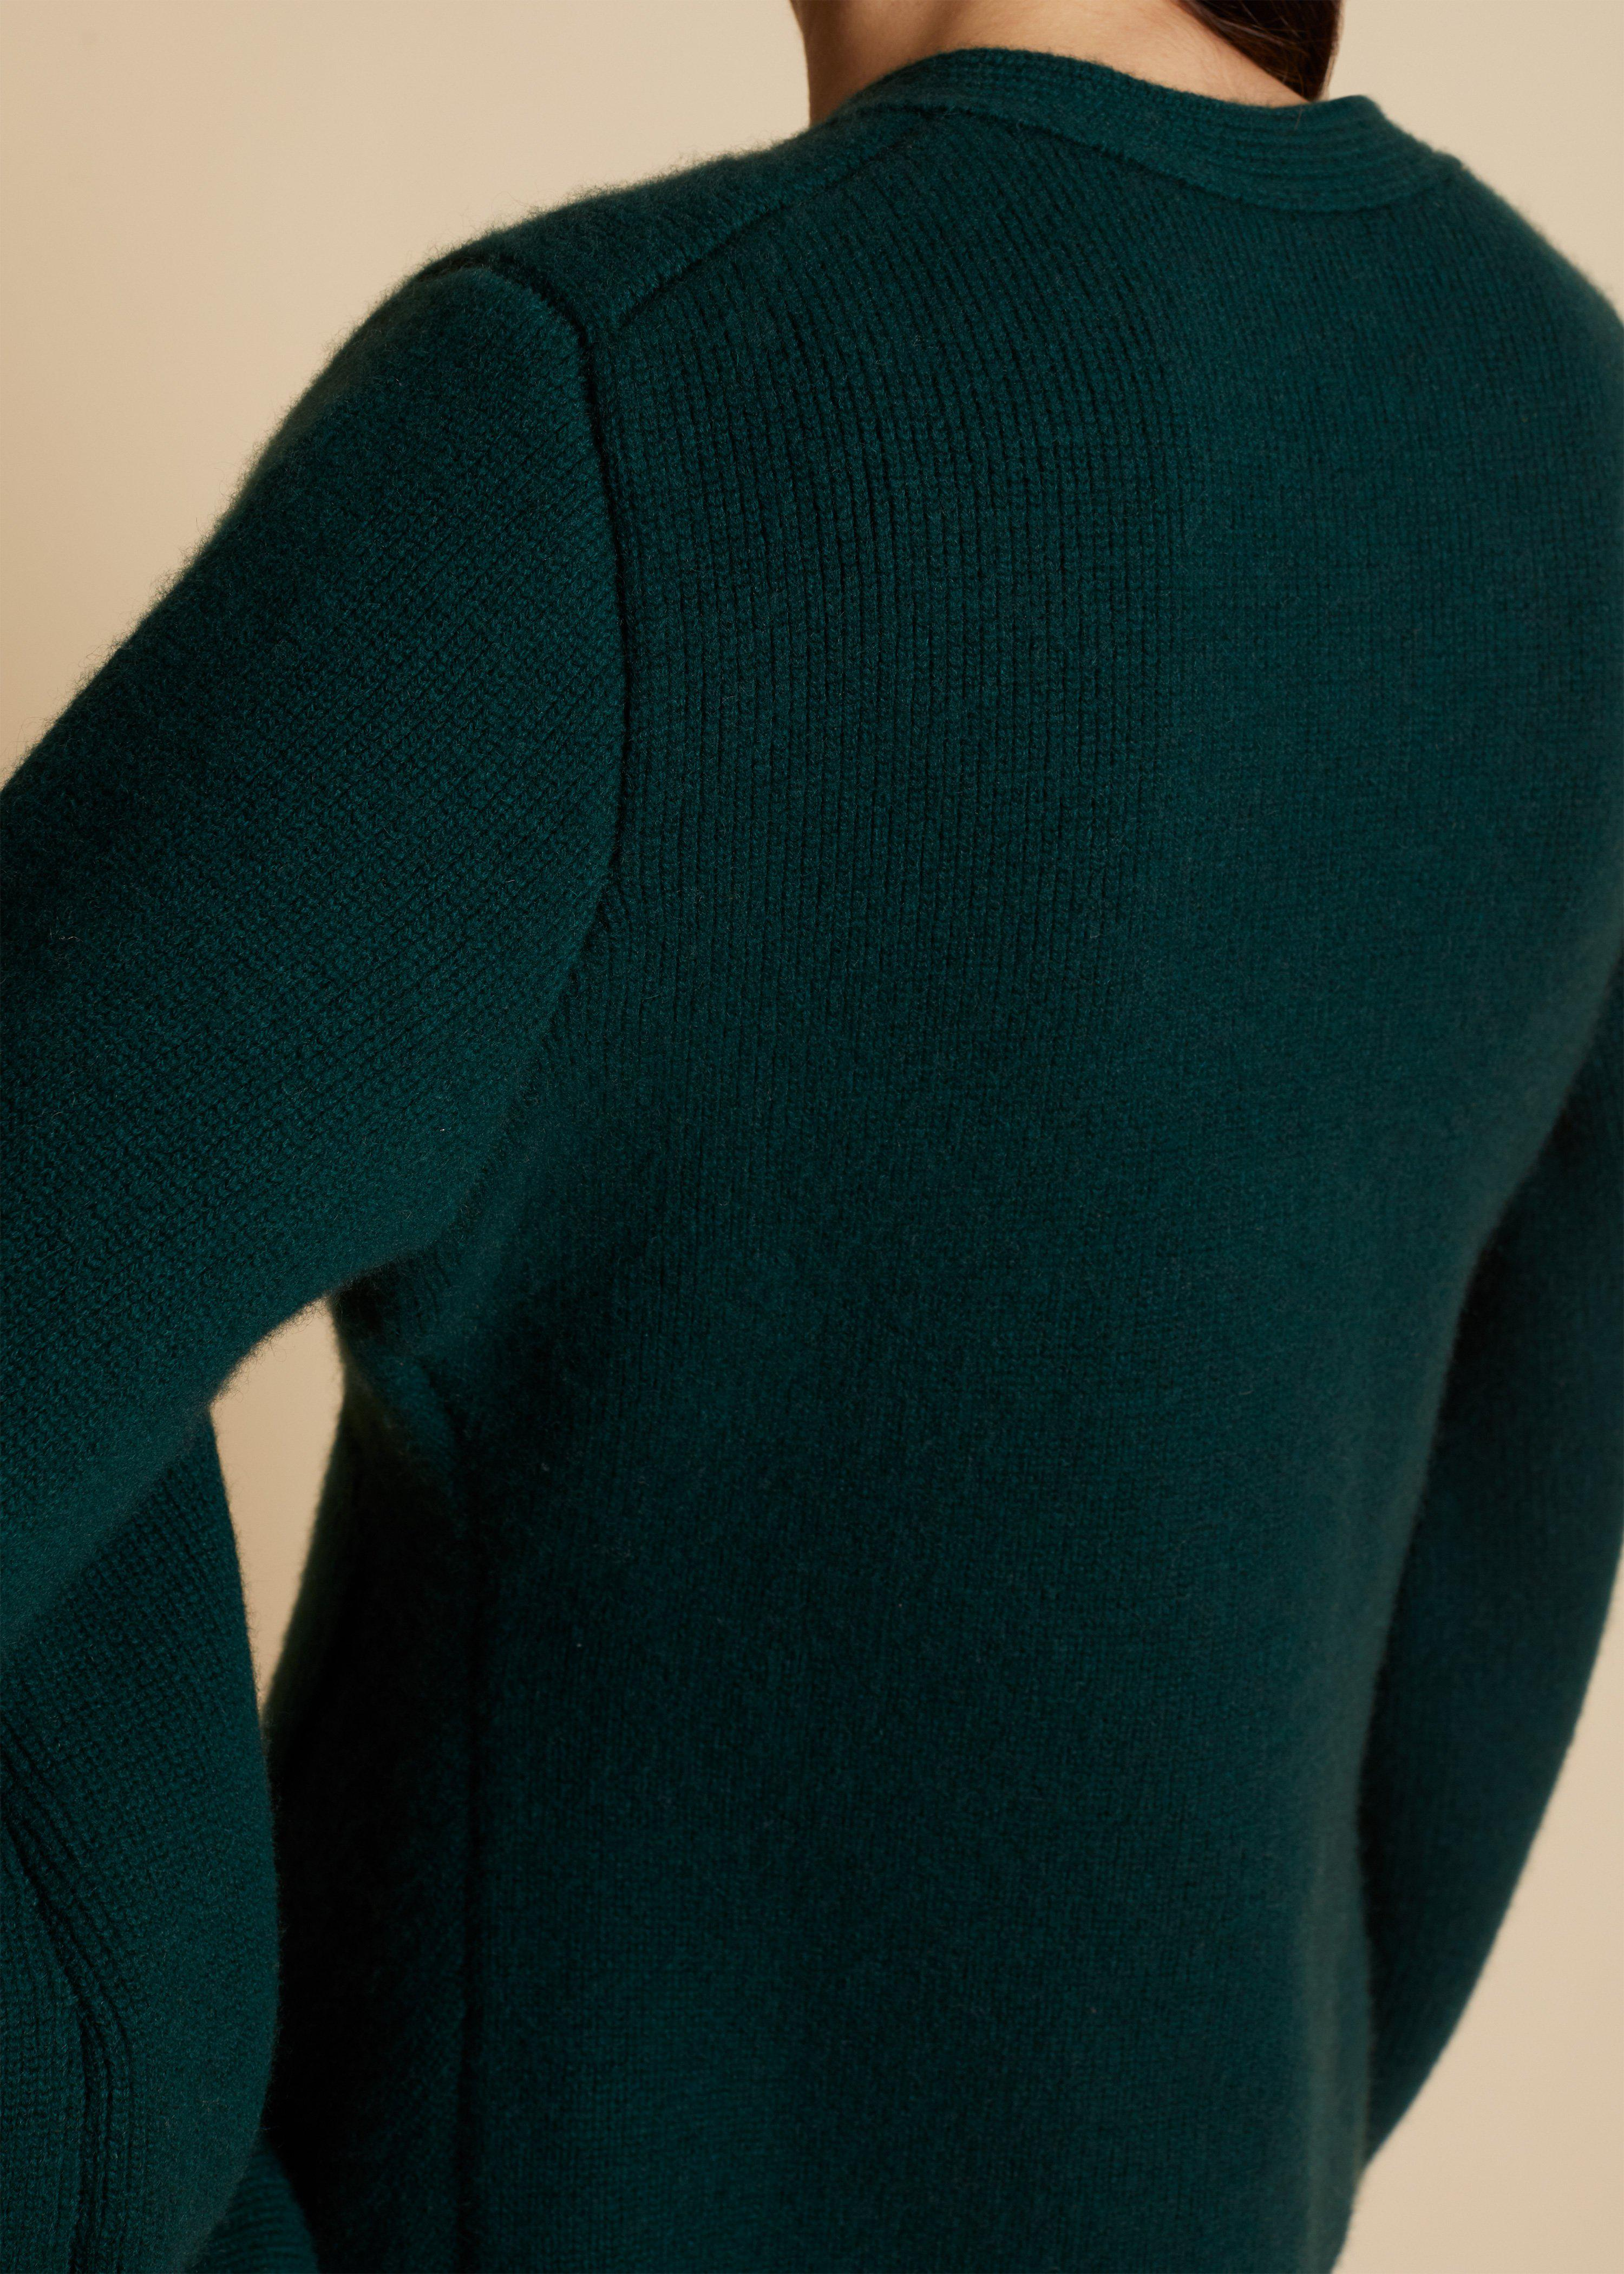 The Scarlet Cardigan in Evergreen 3